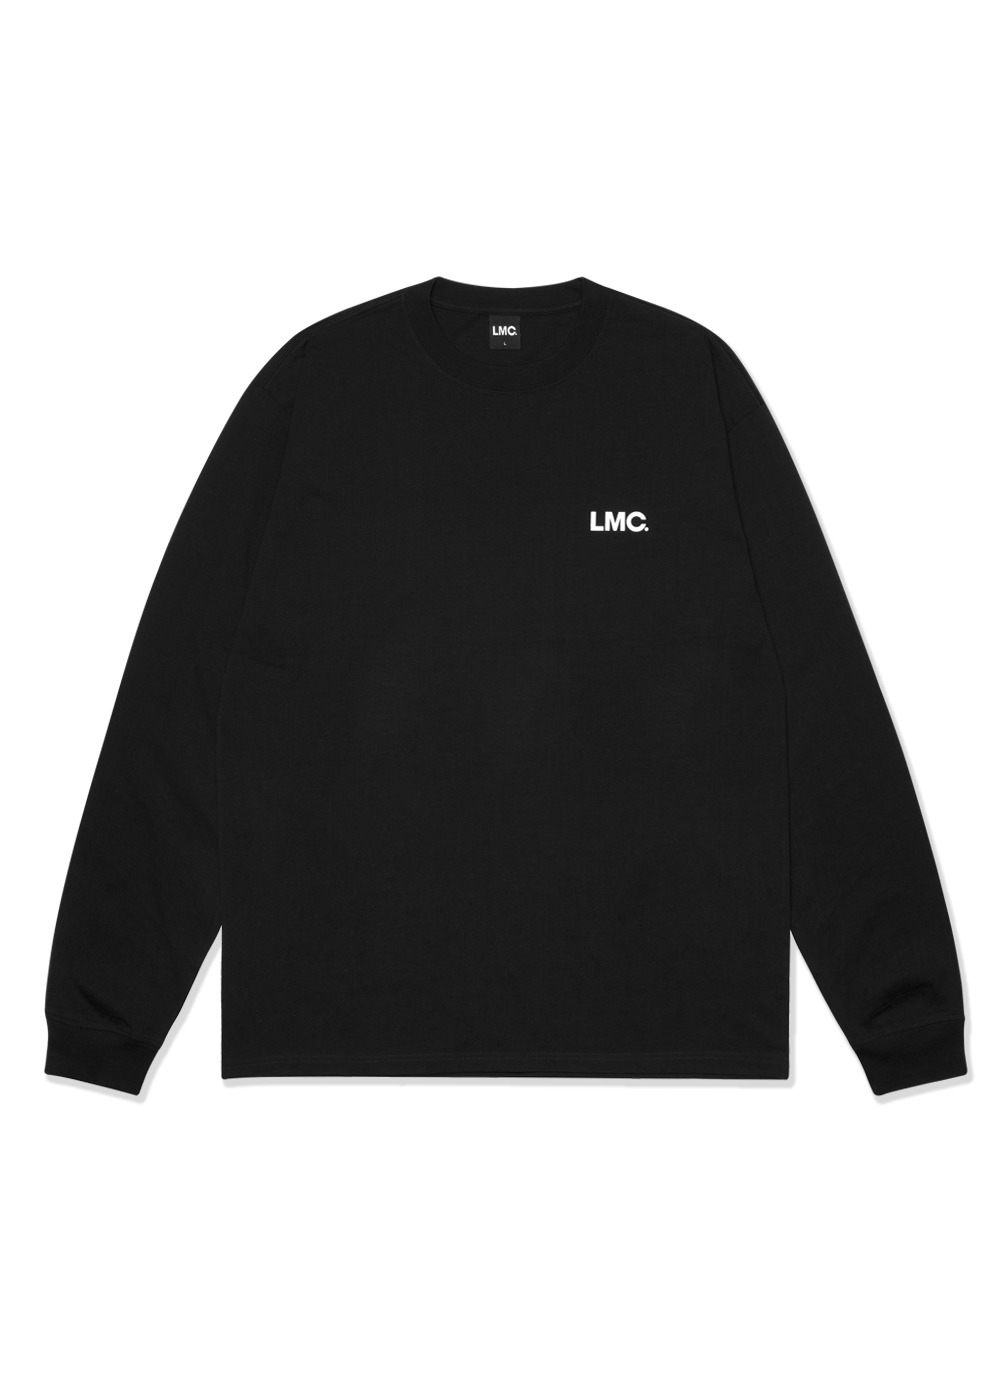 LMC BASIC OG LONG SLV TEE black